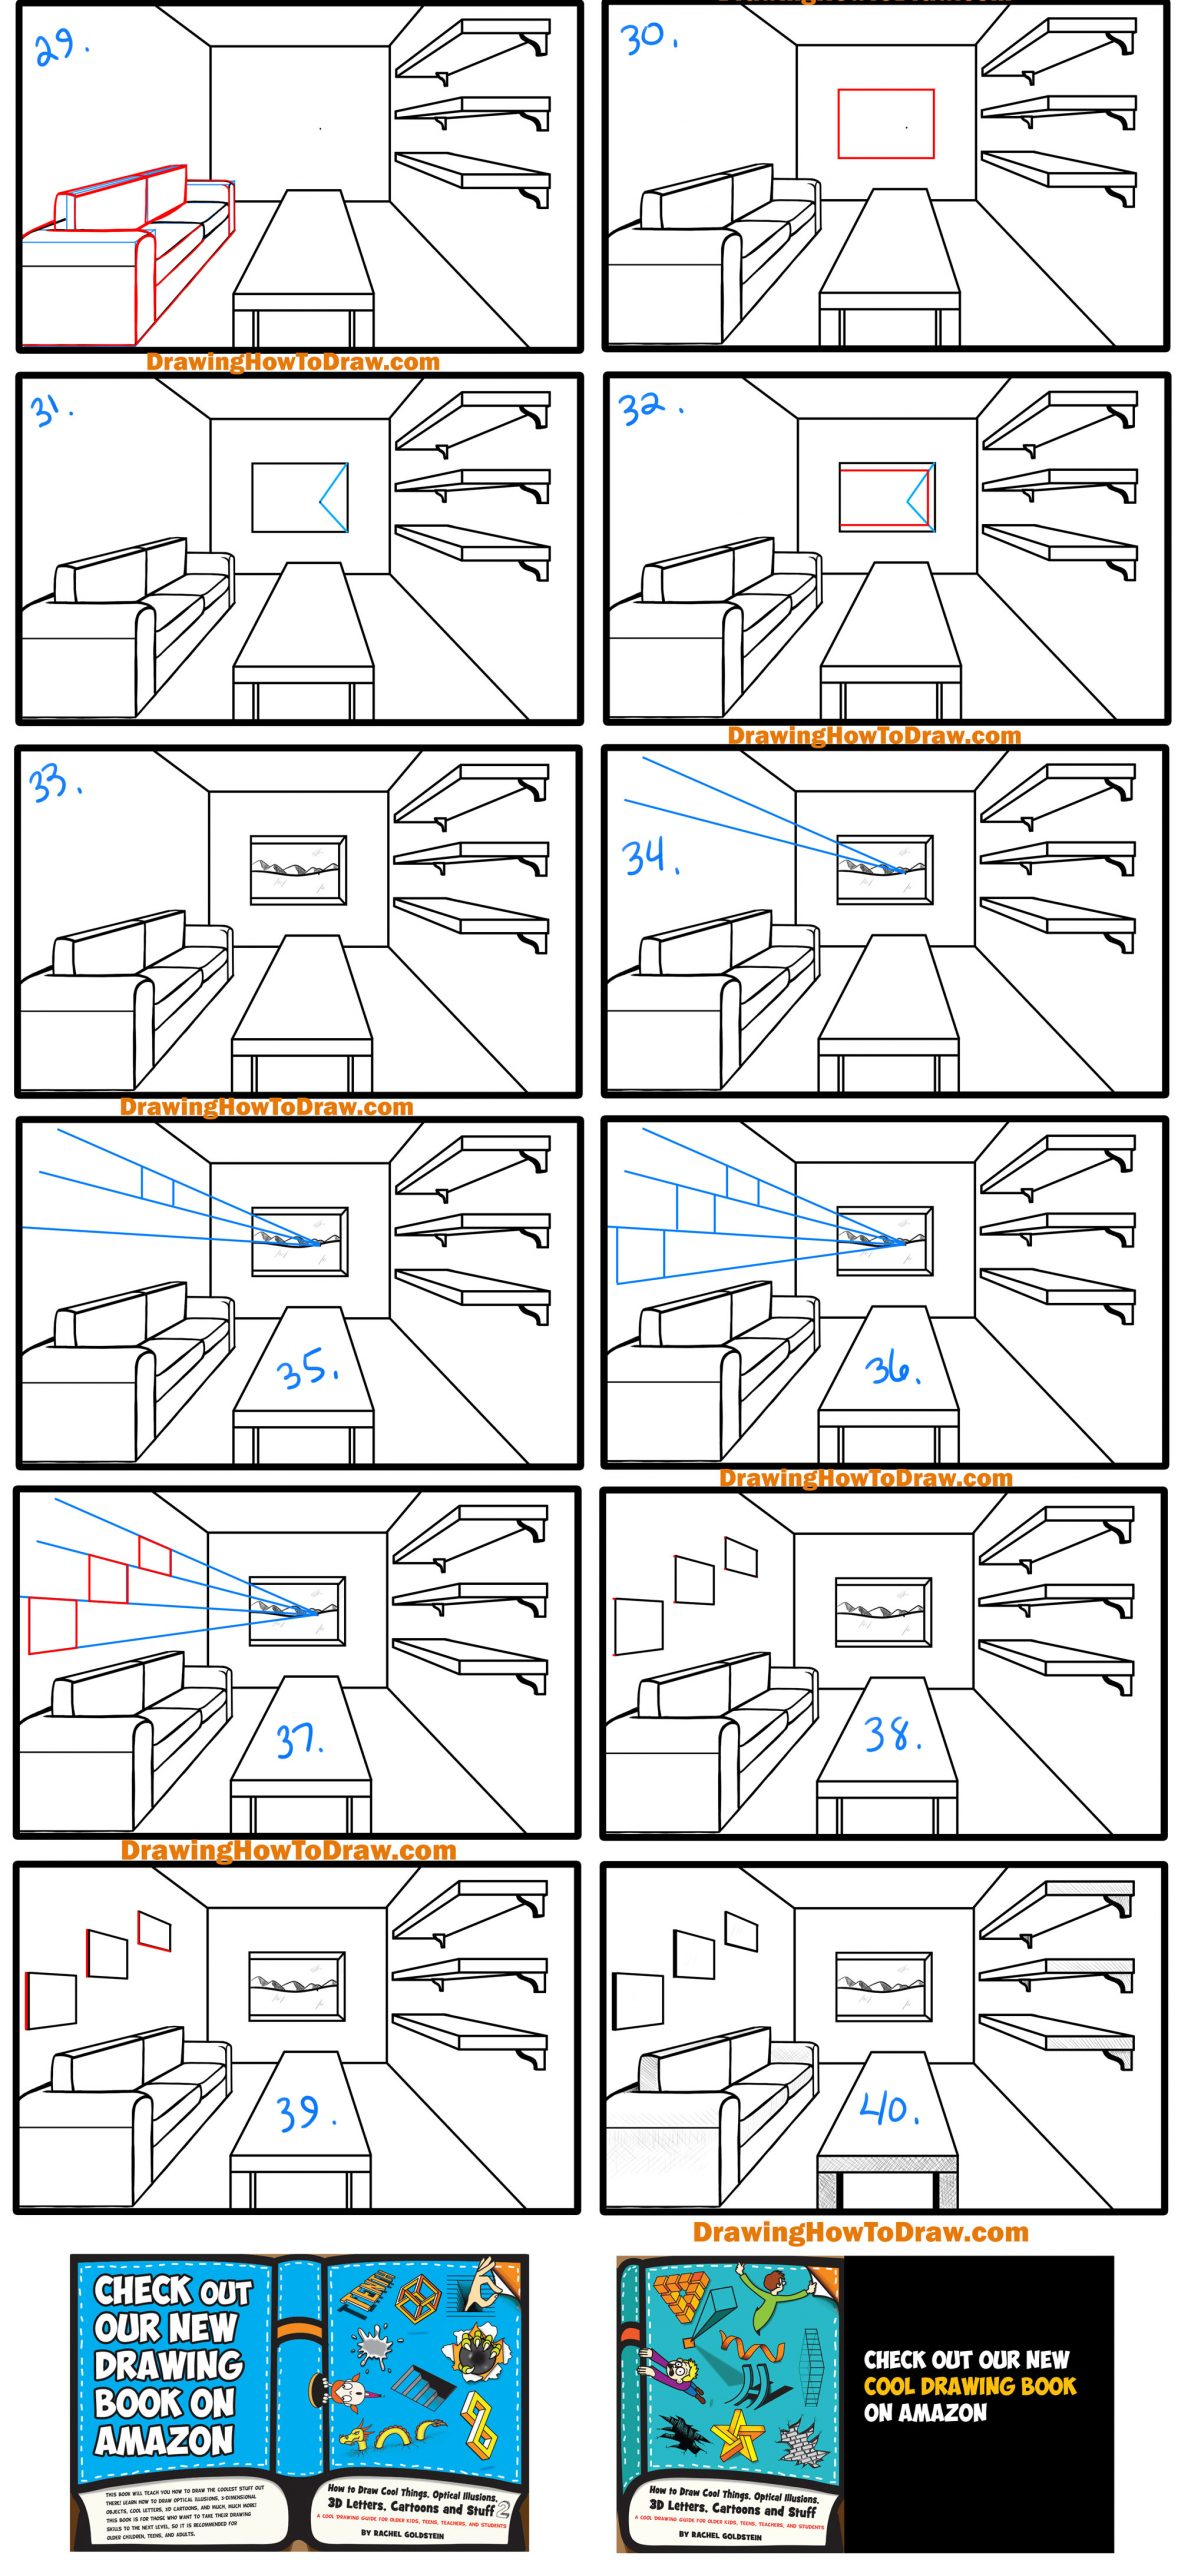 One Perspective Drawing Room: How To Draw A Room In 1 Point Perspective Easy Step By